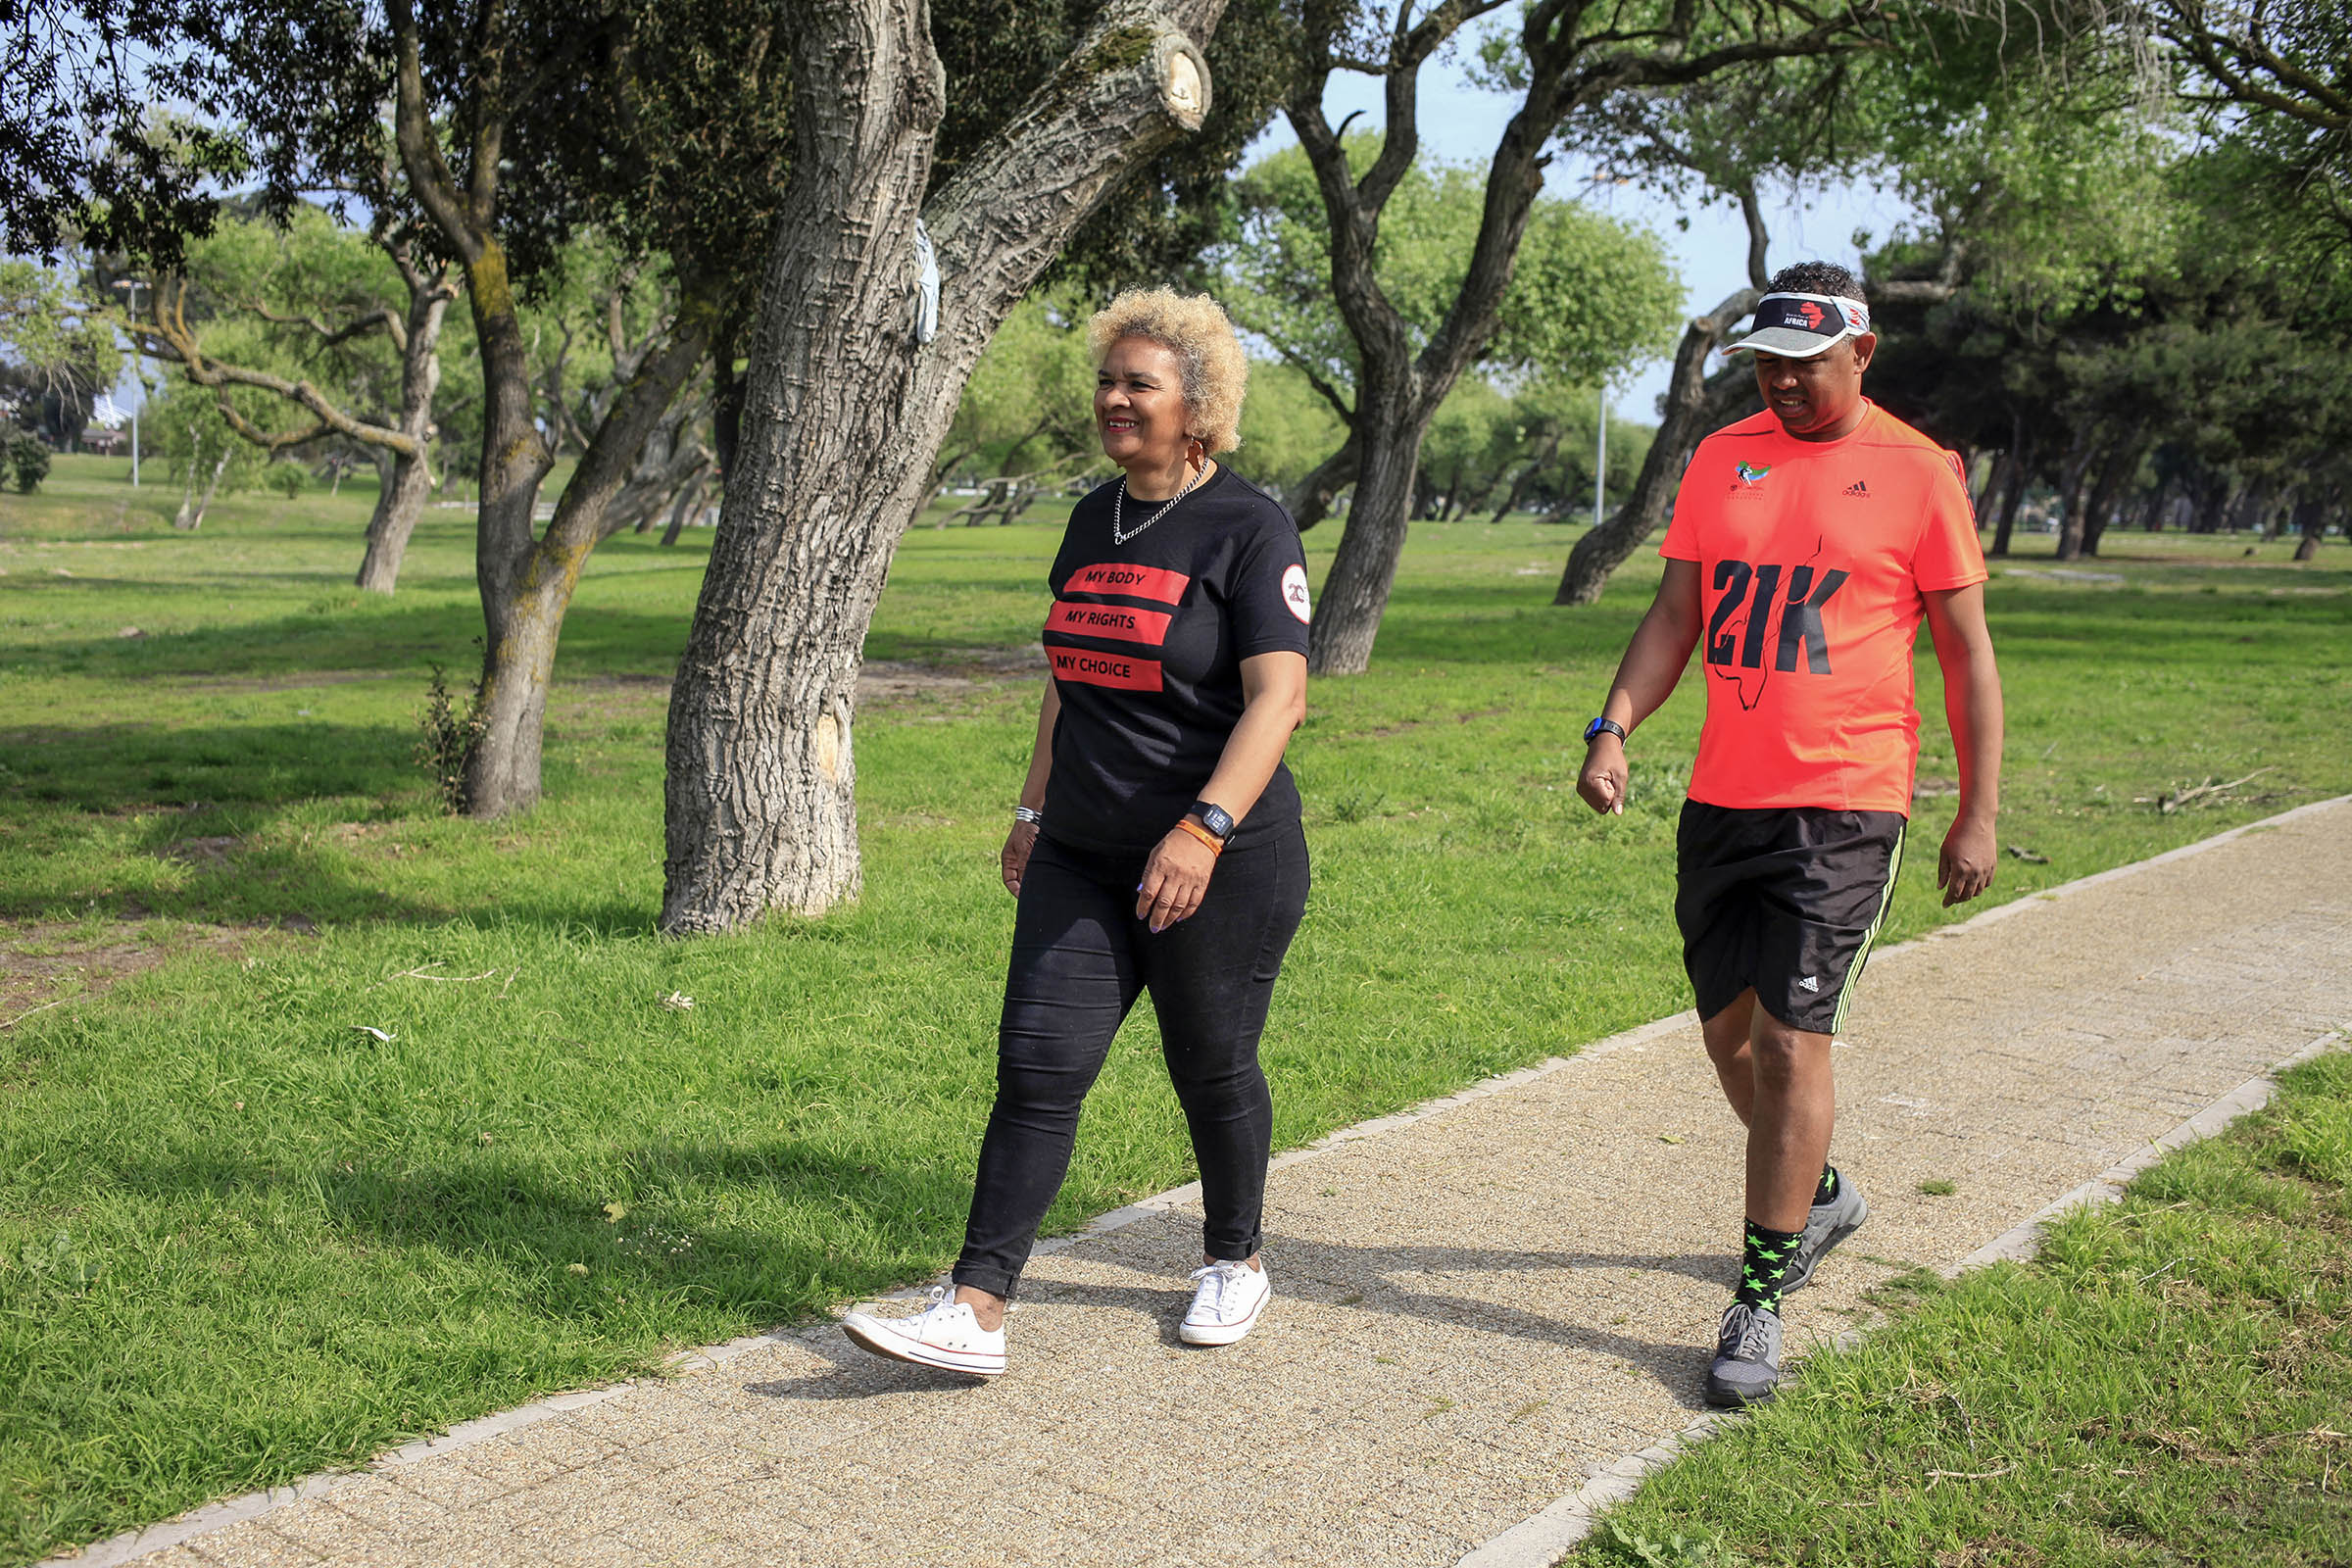 9 September 2019: Caroline Peters and her partner Gerald Paulse walking through Nantes park in Bridgetown, Cape Town. In 2014, in the year of her 50th birthday, Peters made history by becoming the first woman to start a running club in Cape Town.